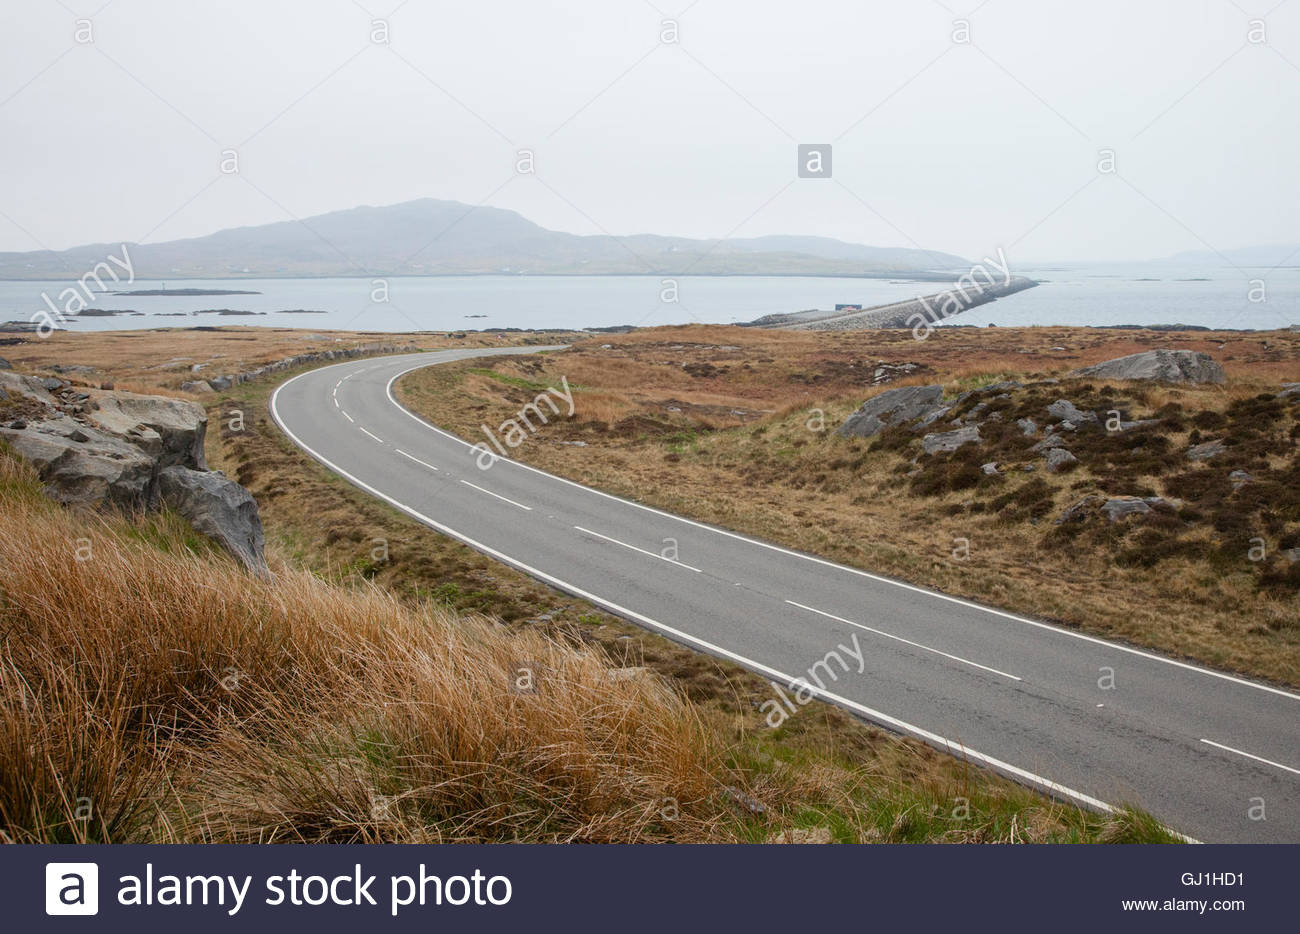 An empty road leading to the causeway connecting South Uist to Eriskay, Outer Hebrides, Scotland. Stock Photo